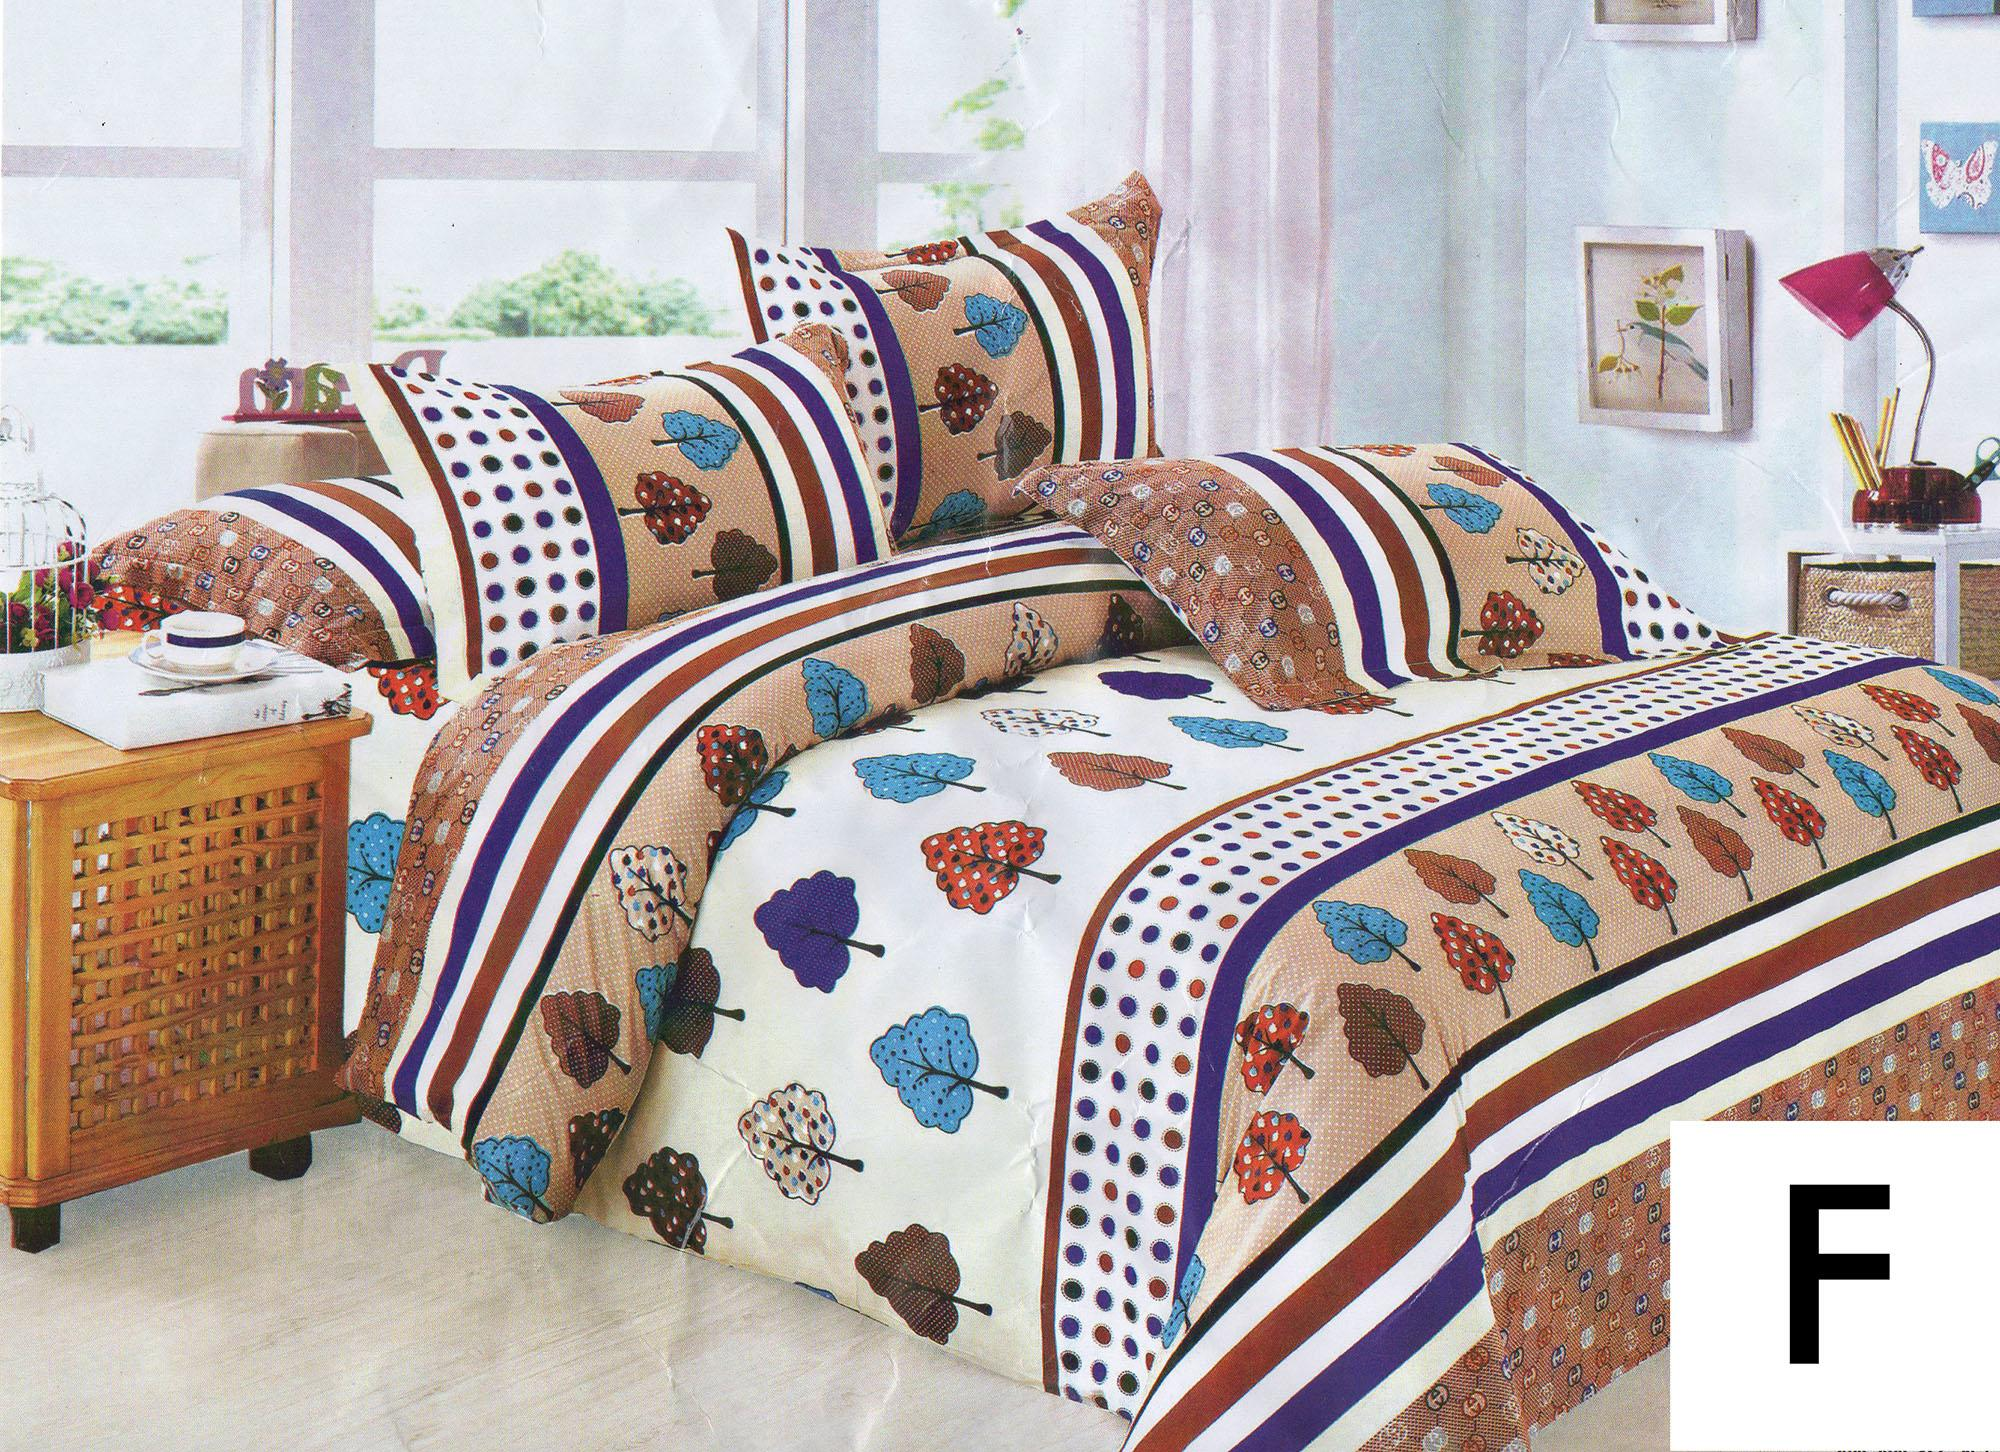 f865c4f011 Bedding Sets for sale - Bedding Set prices, brands & review in ...